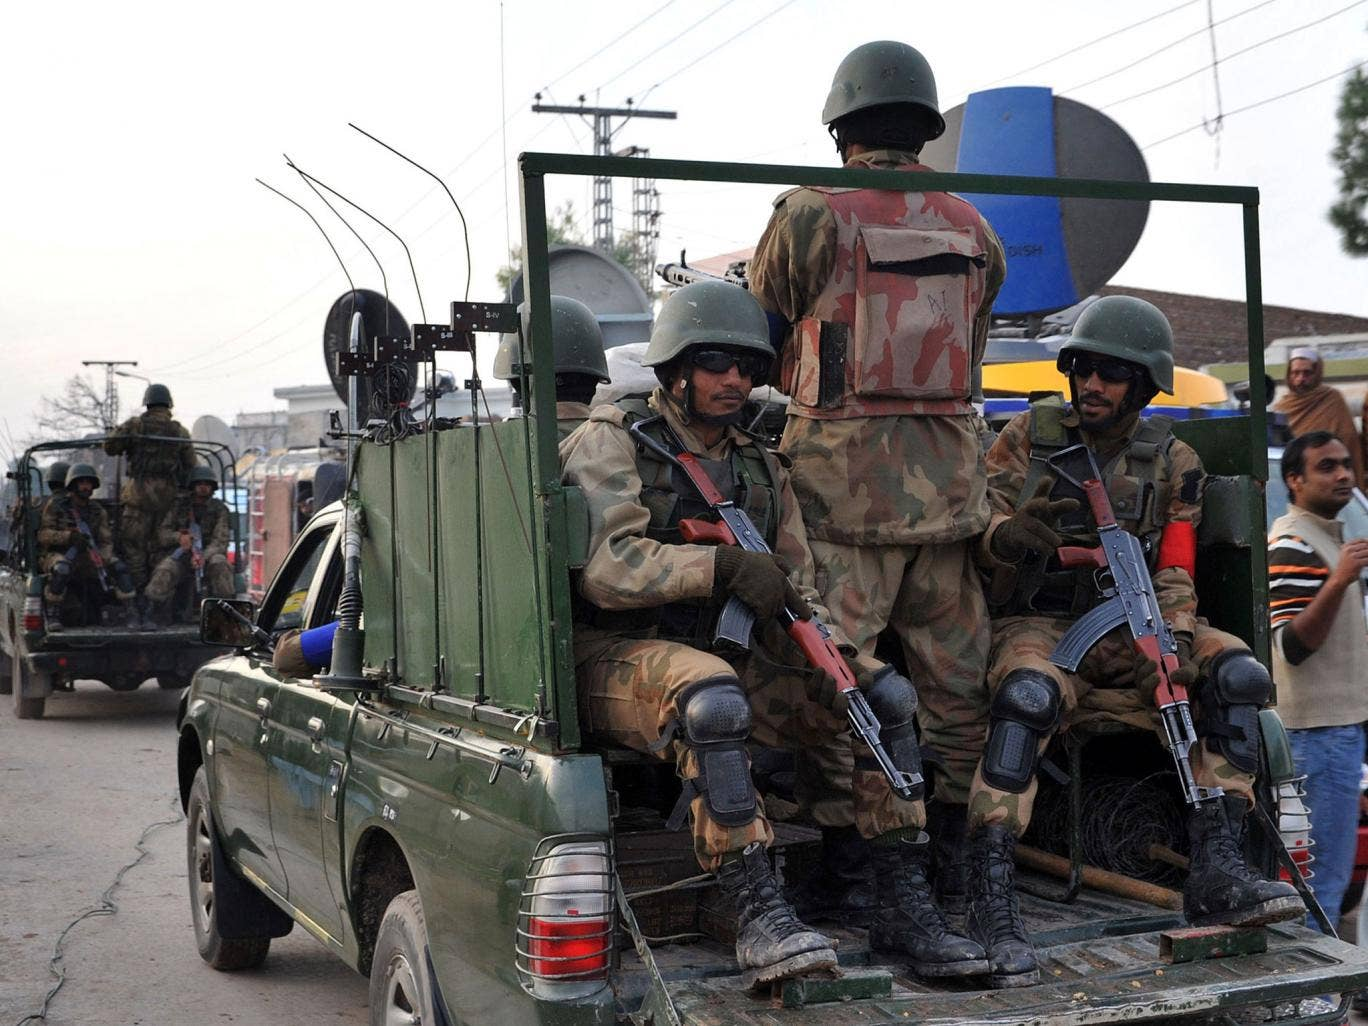 Pakistani army soldiers patrol outside the airport in Peshawar after the Pakistani Taliban claimed responsibility for suicide attack on an international airport earlier this month